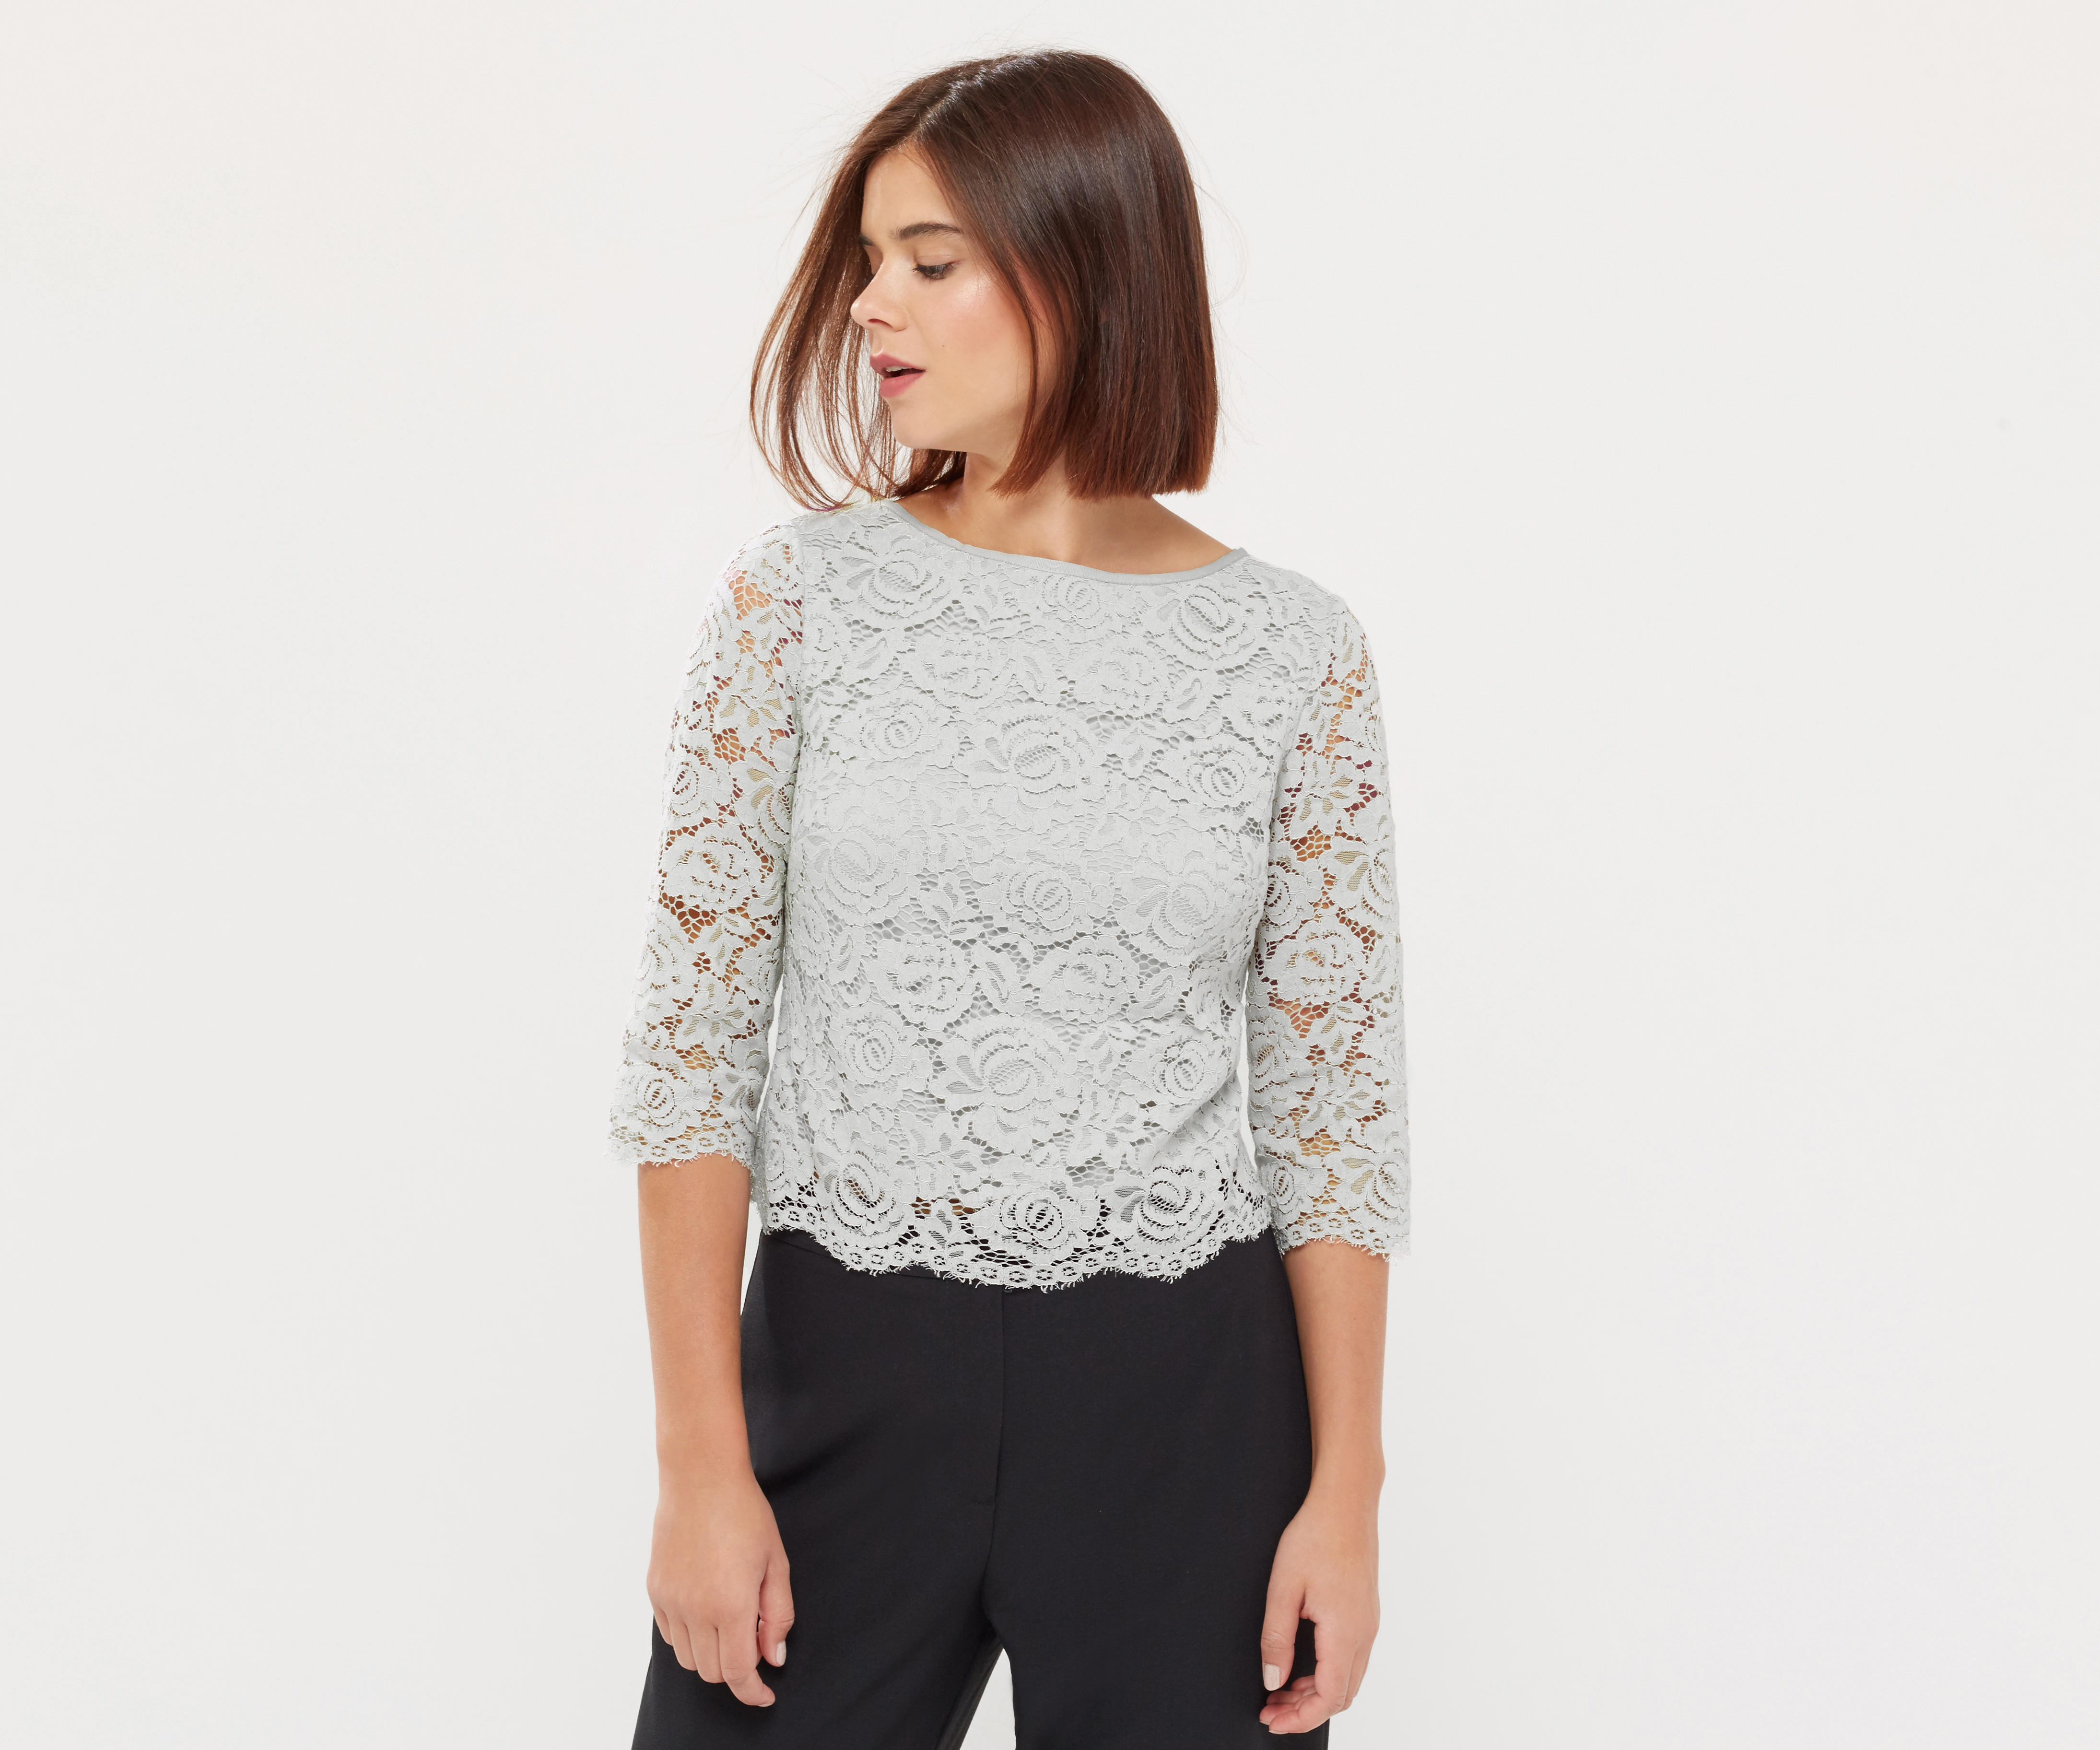 Find great deals on eBay for grey lace top. Shop with confidence.